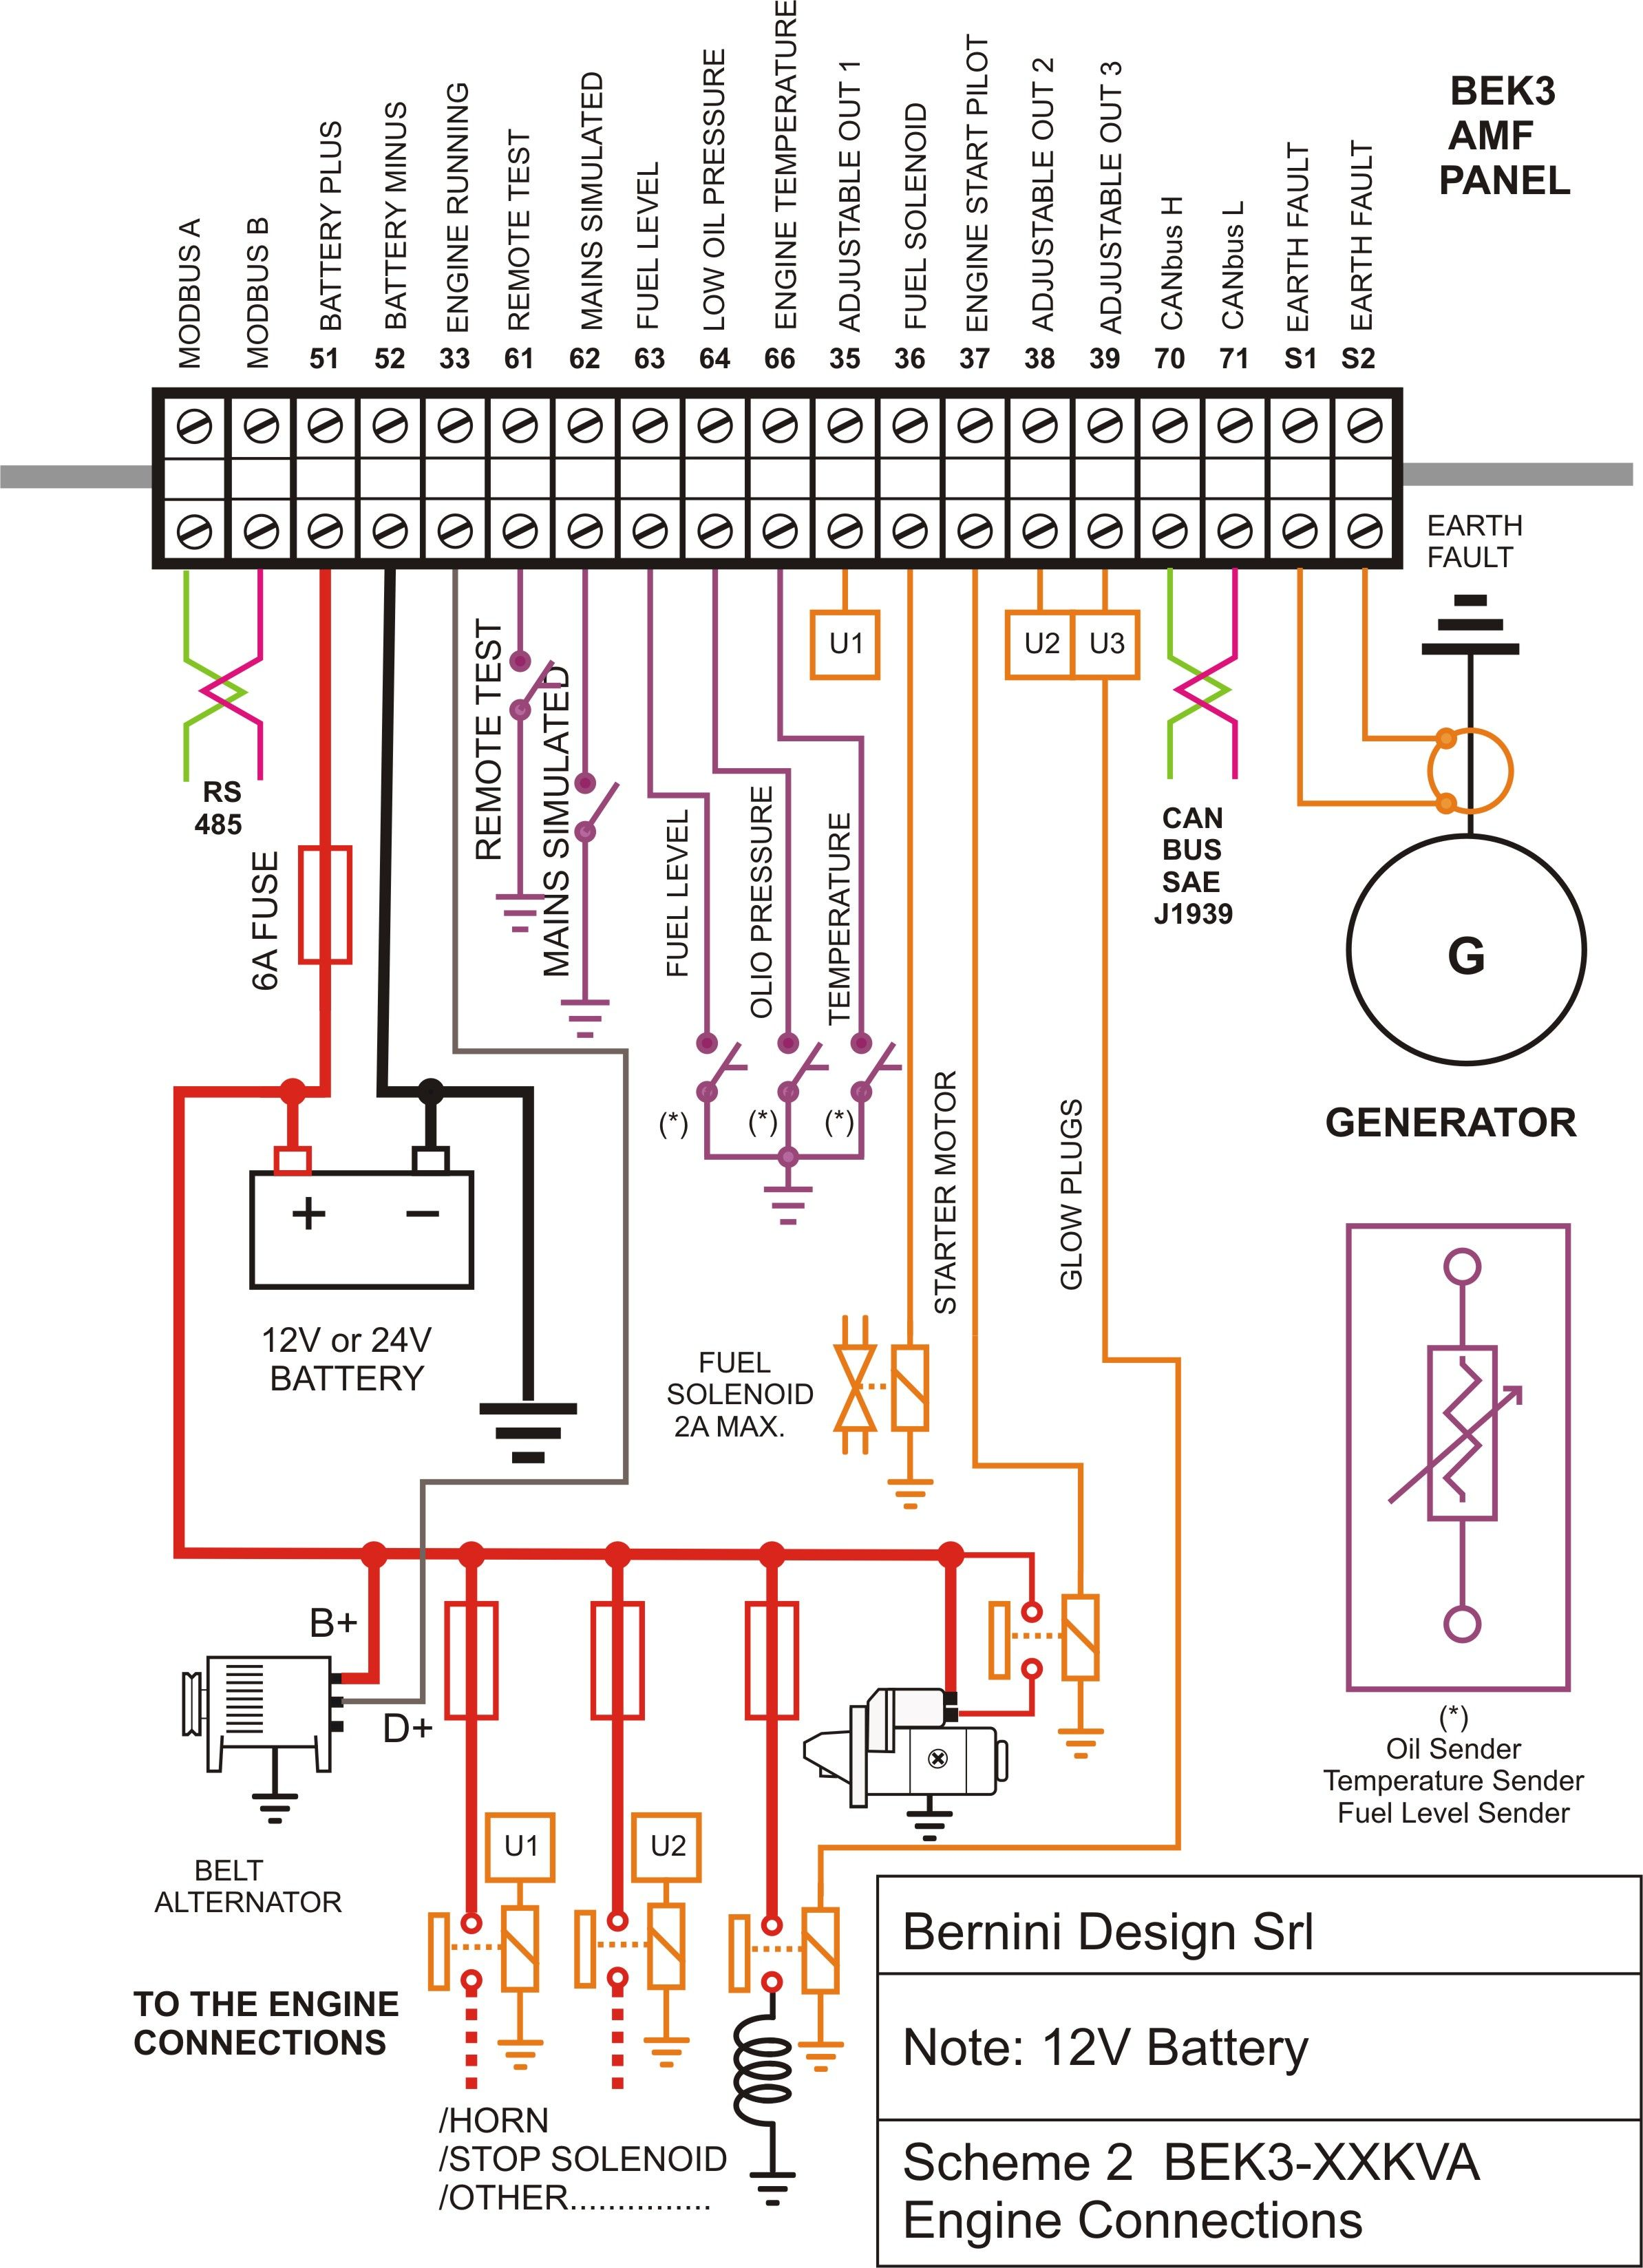 diesel generator control panel wiring diagram Engine Connections Basic Electrical  Wiring, Electrical Symbols, Control